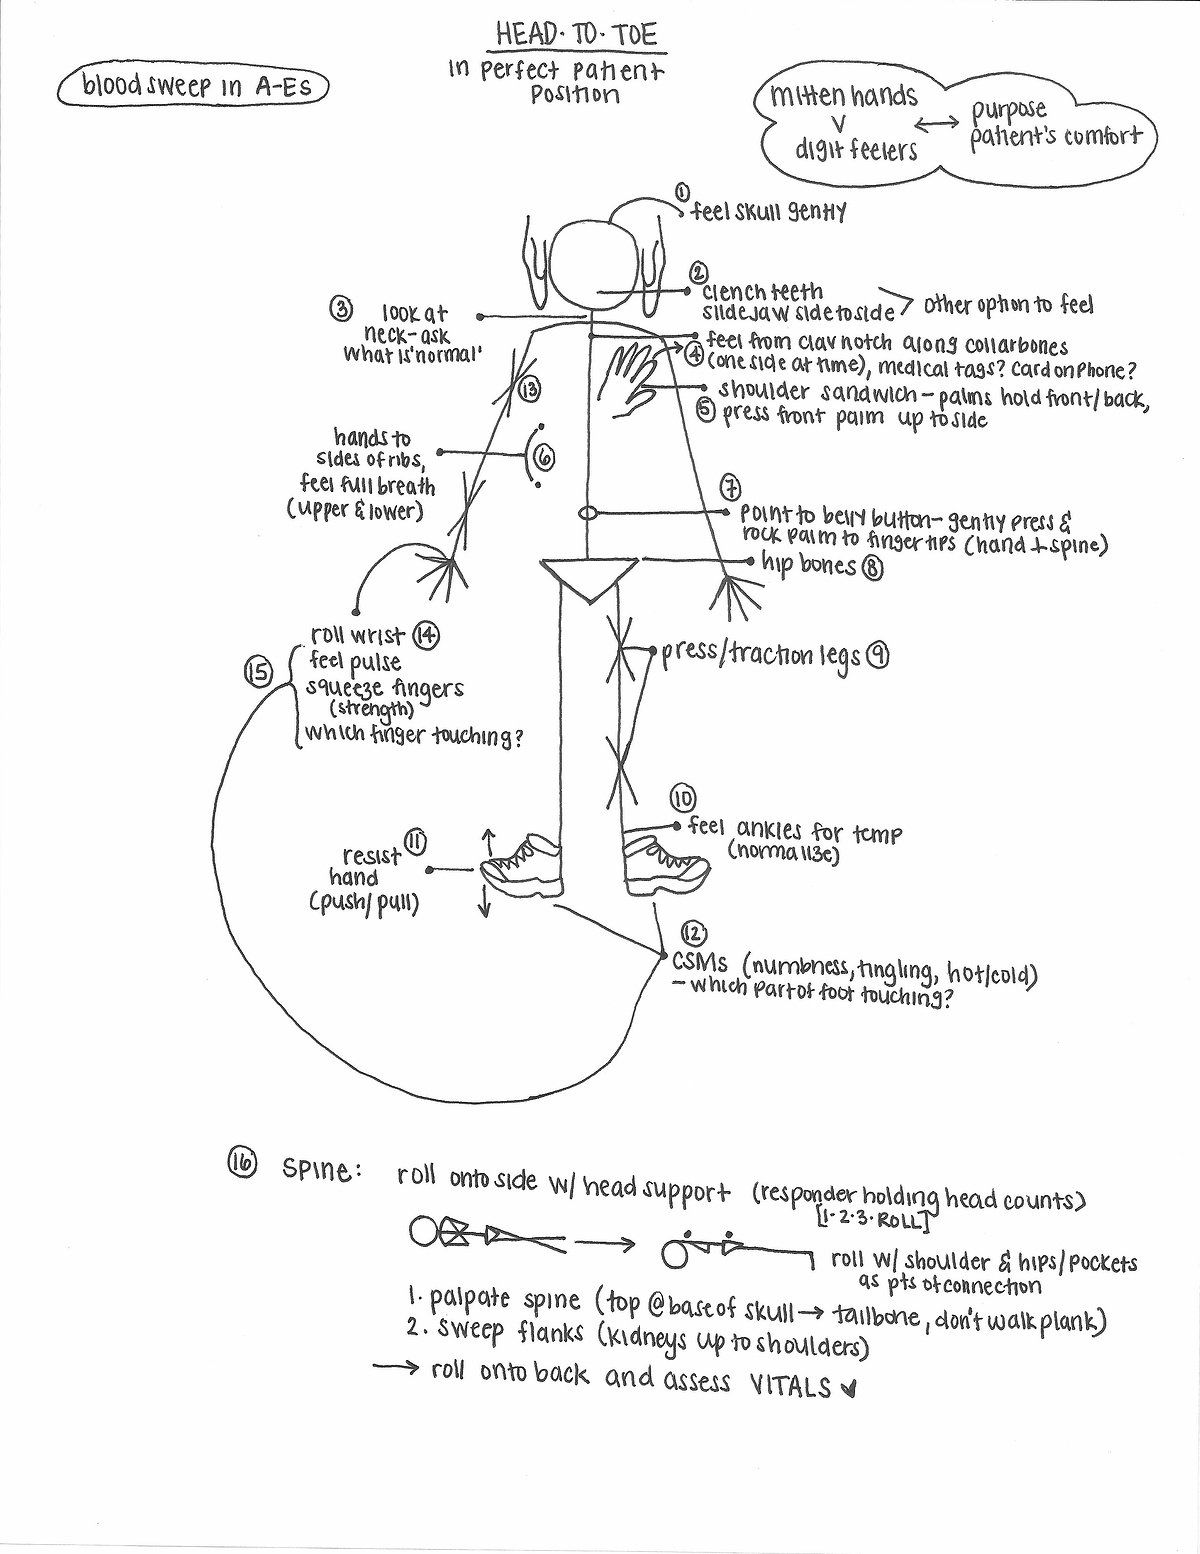 Patient Assessment Visualizing The Head To Toe Exam Assessment Exam Medical History